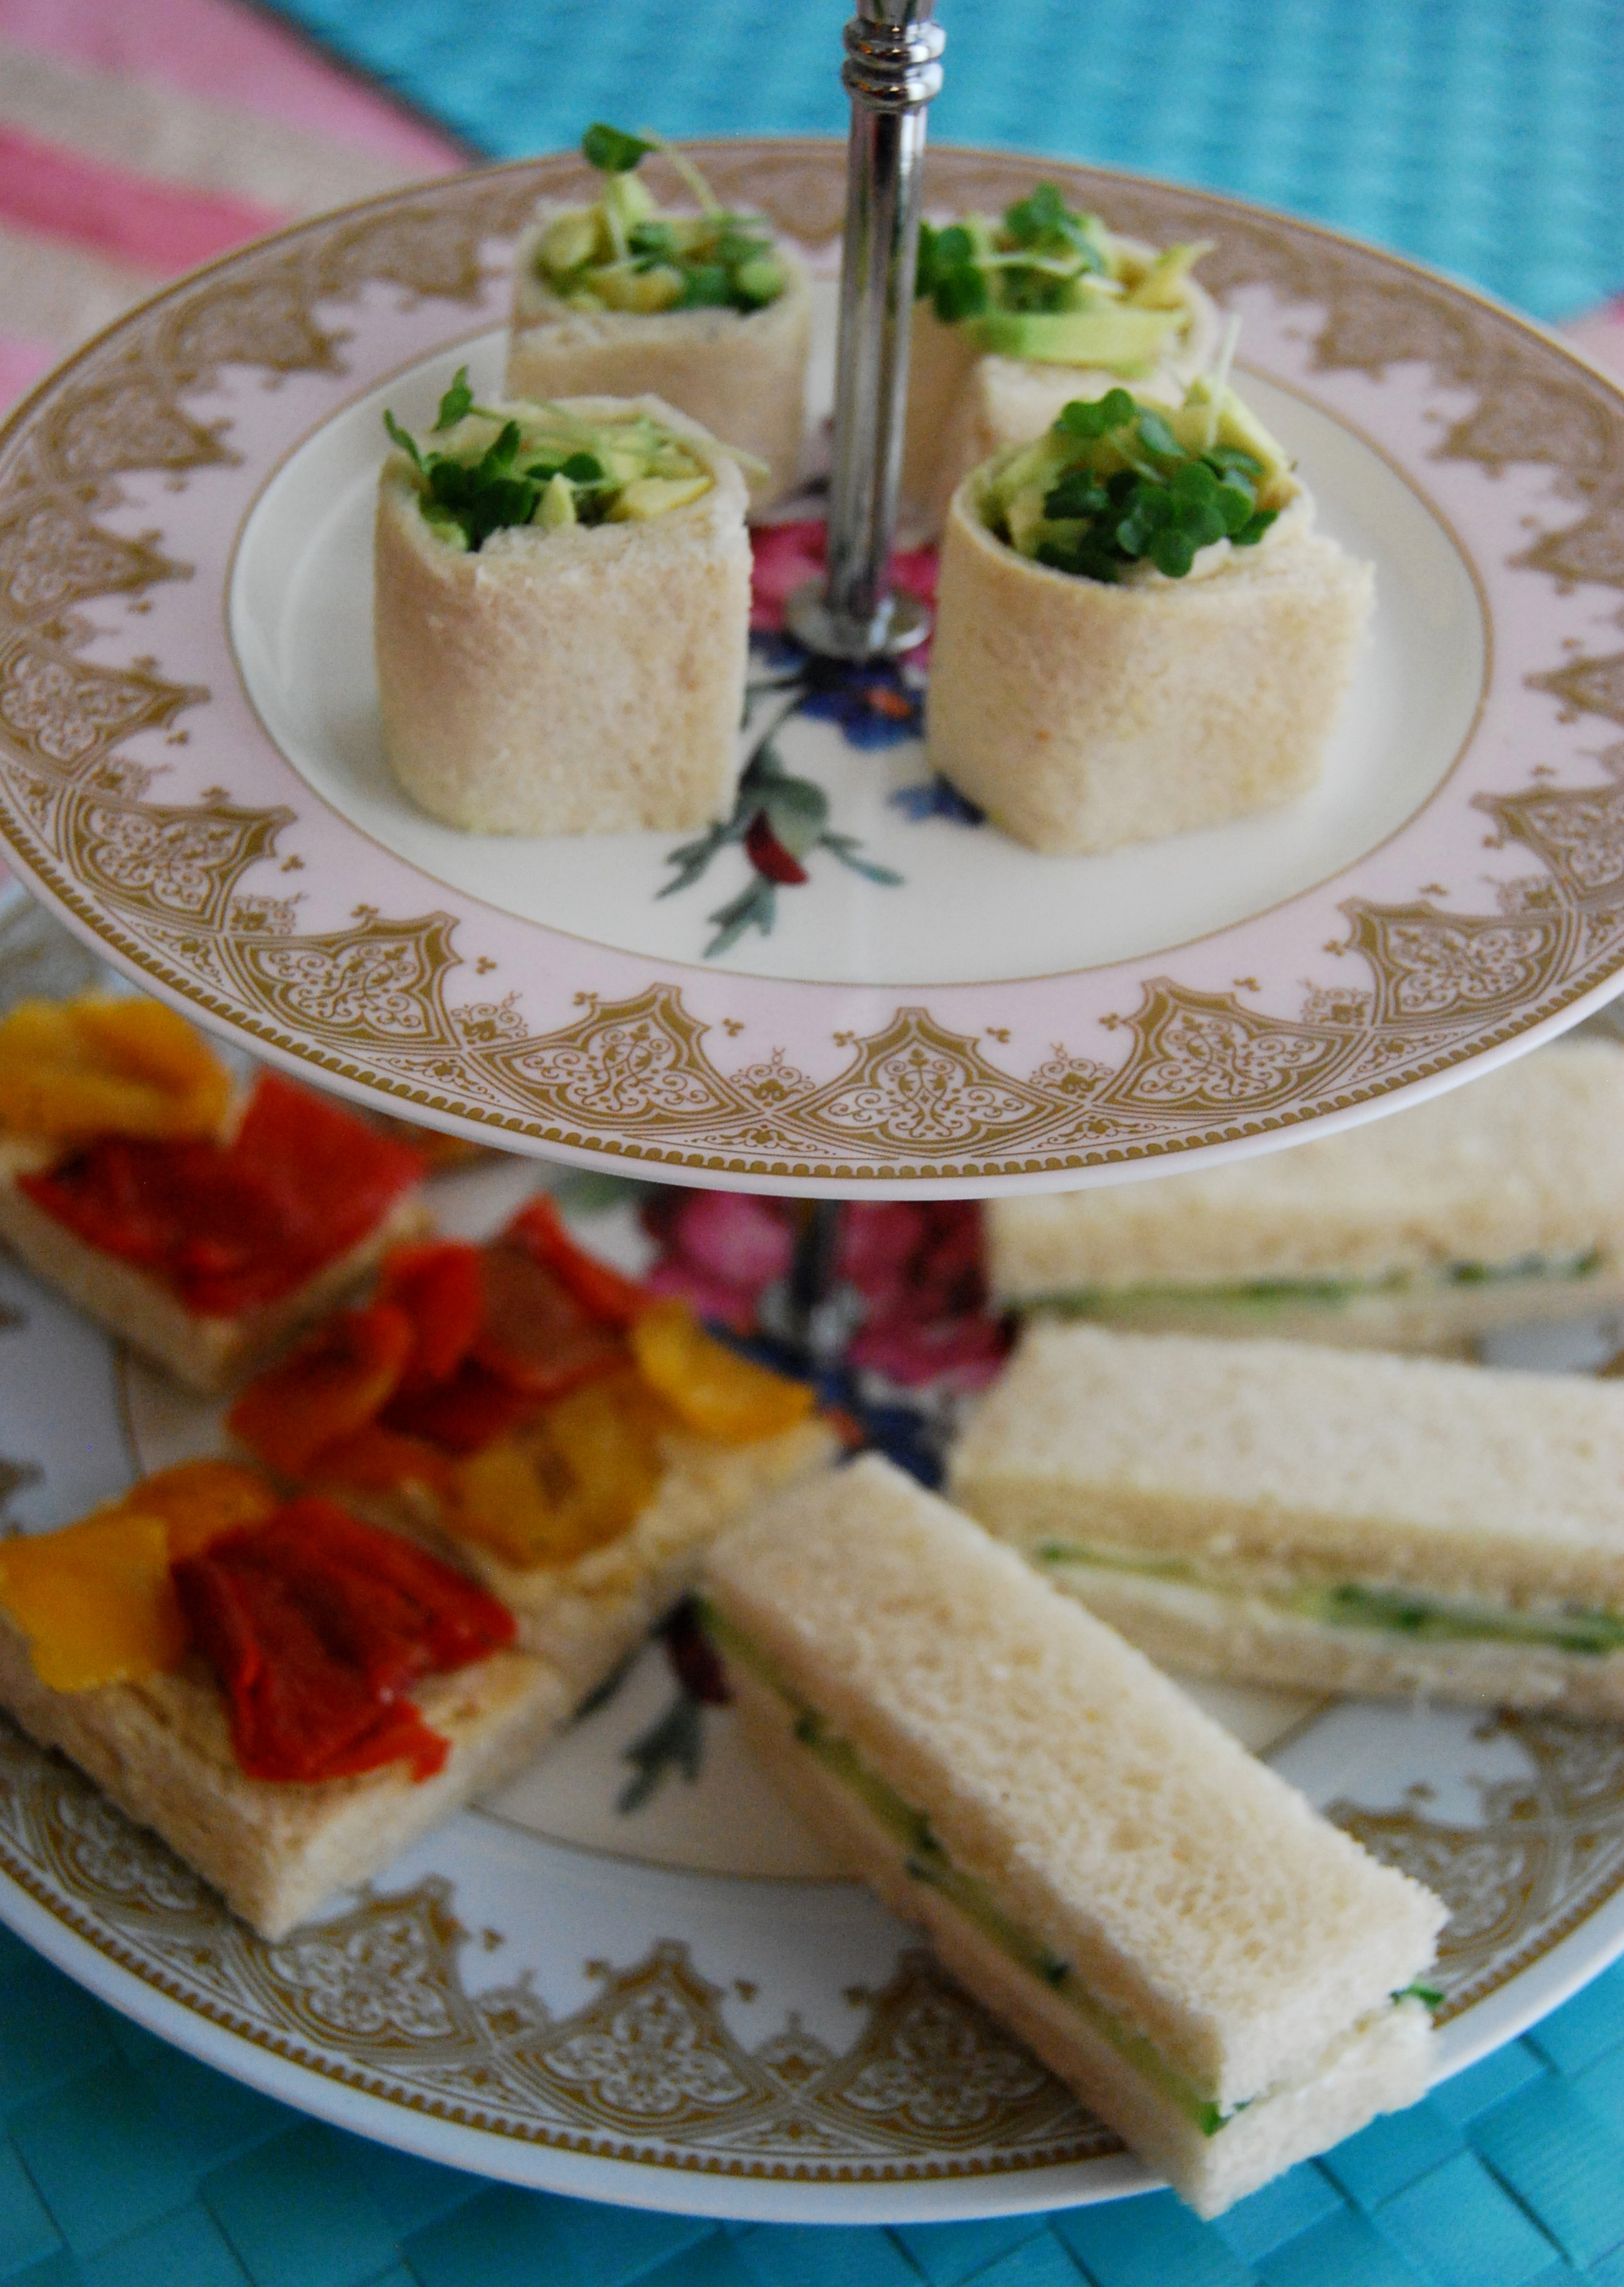 Simple Afternoon Tea Sandwich Ideas Part 1 Vegan MoFo